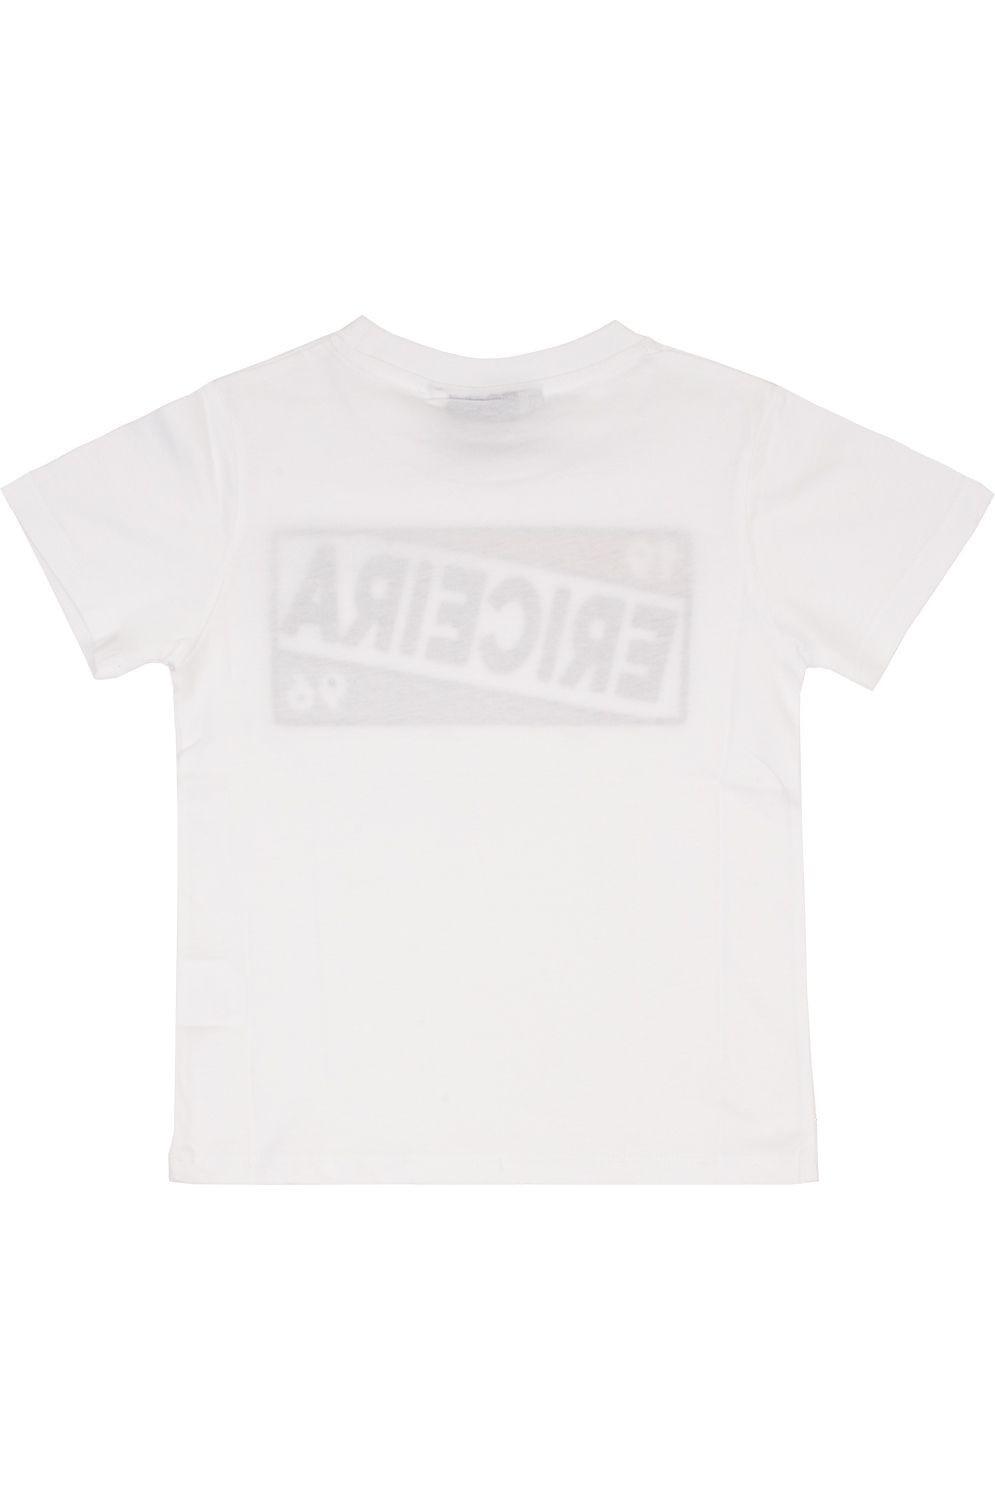 T-Shirt Ericeira Surf Skate INCLINATION White